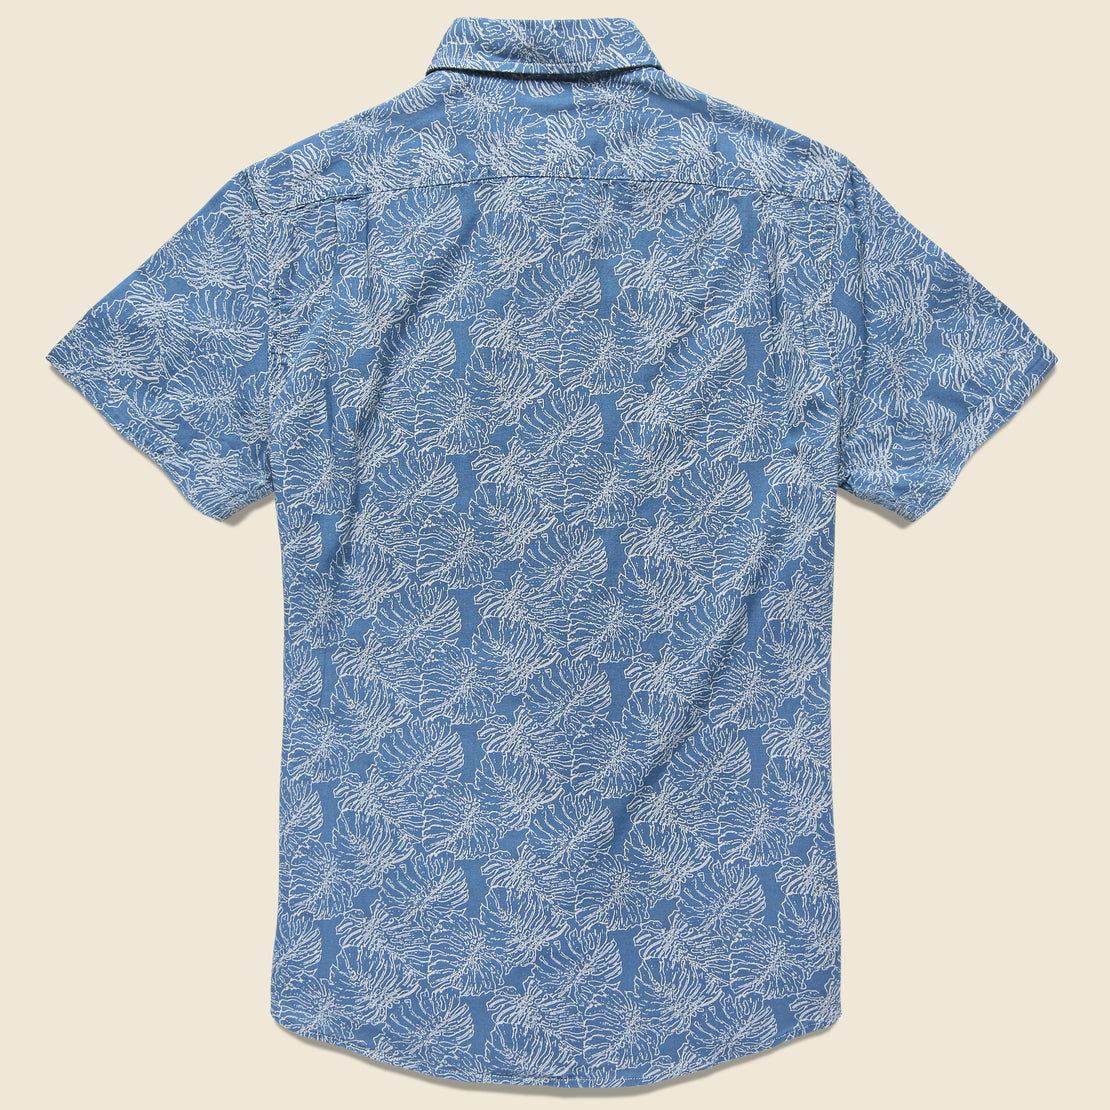 Leaf Print Summer Weave Shirt - Moonlight Blue